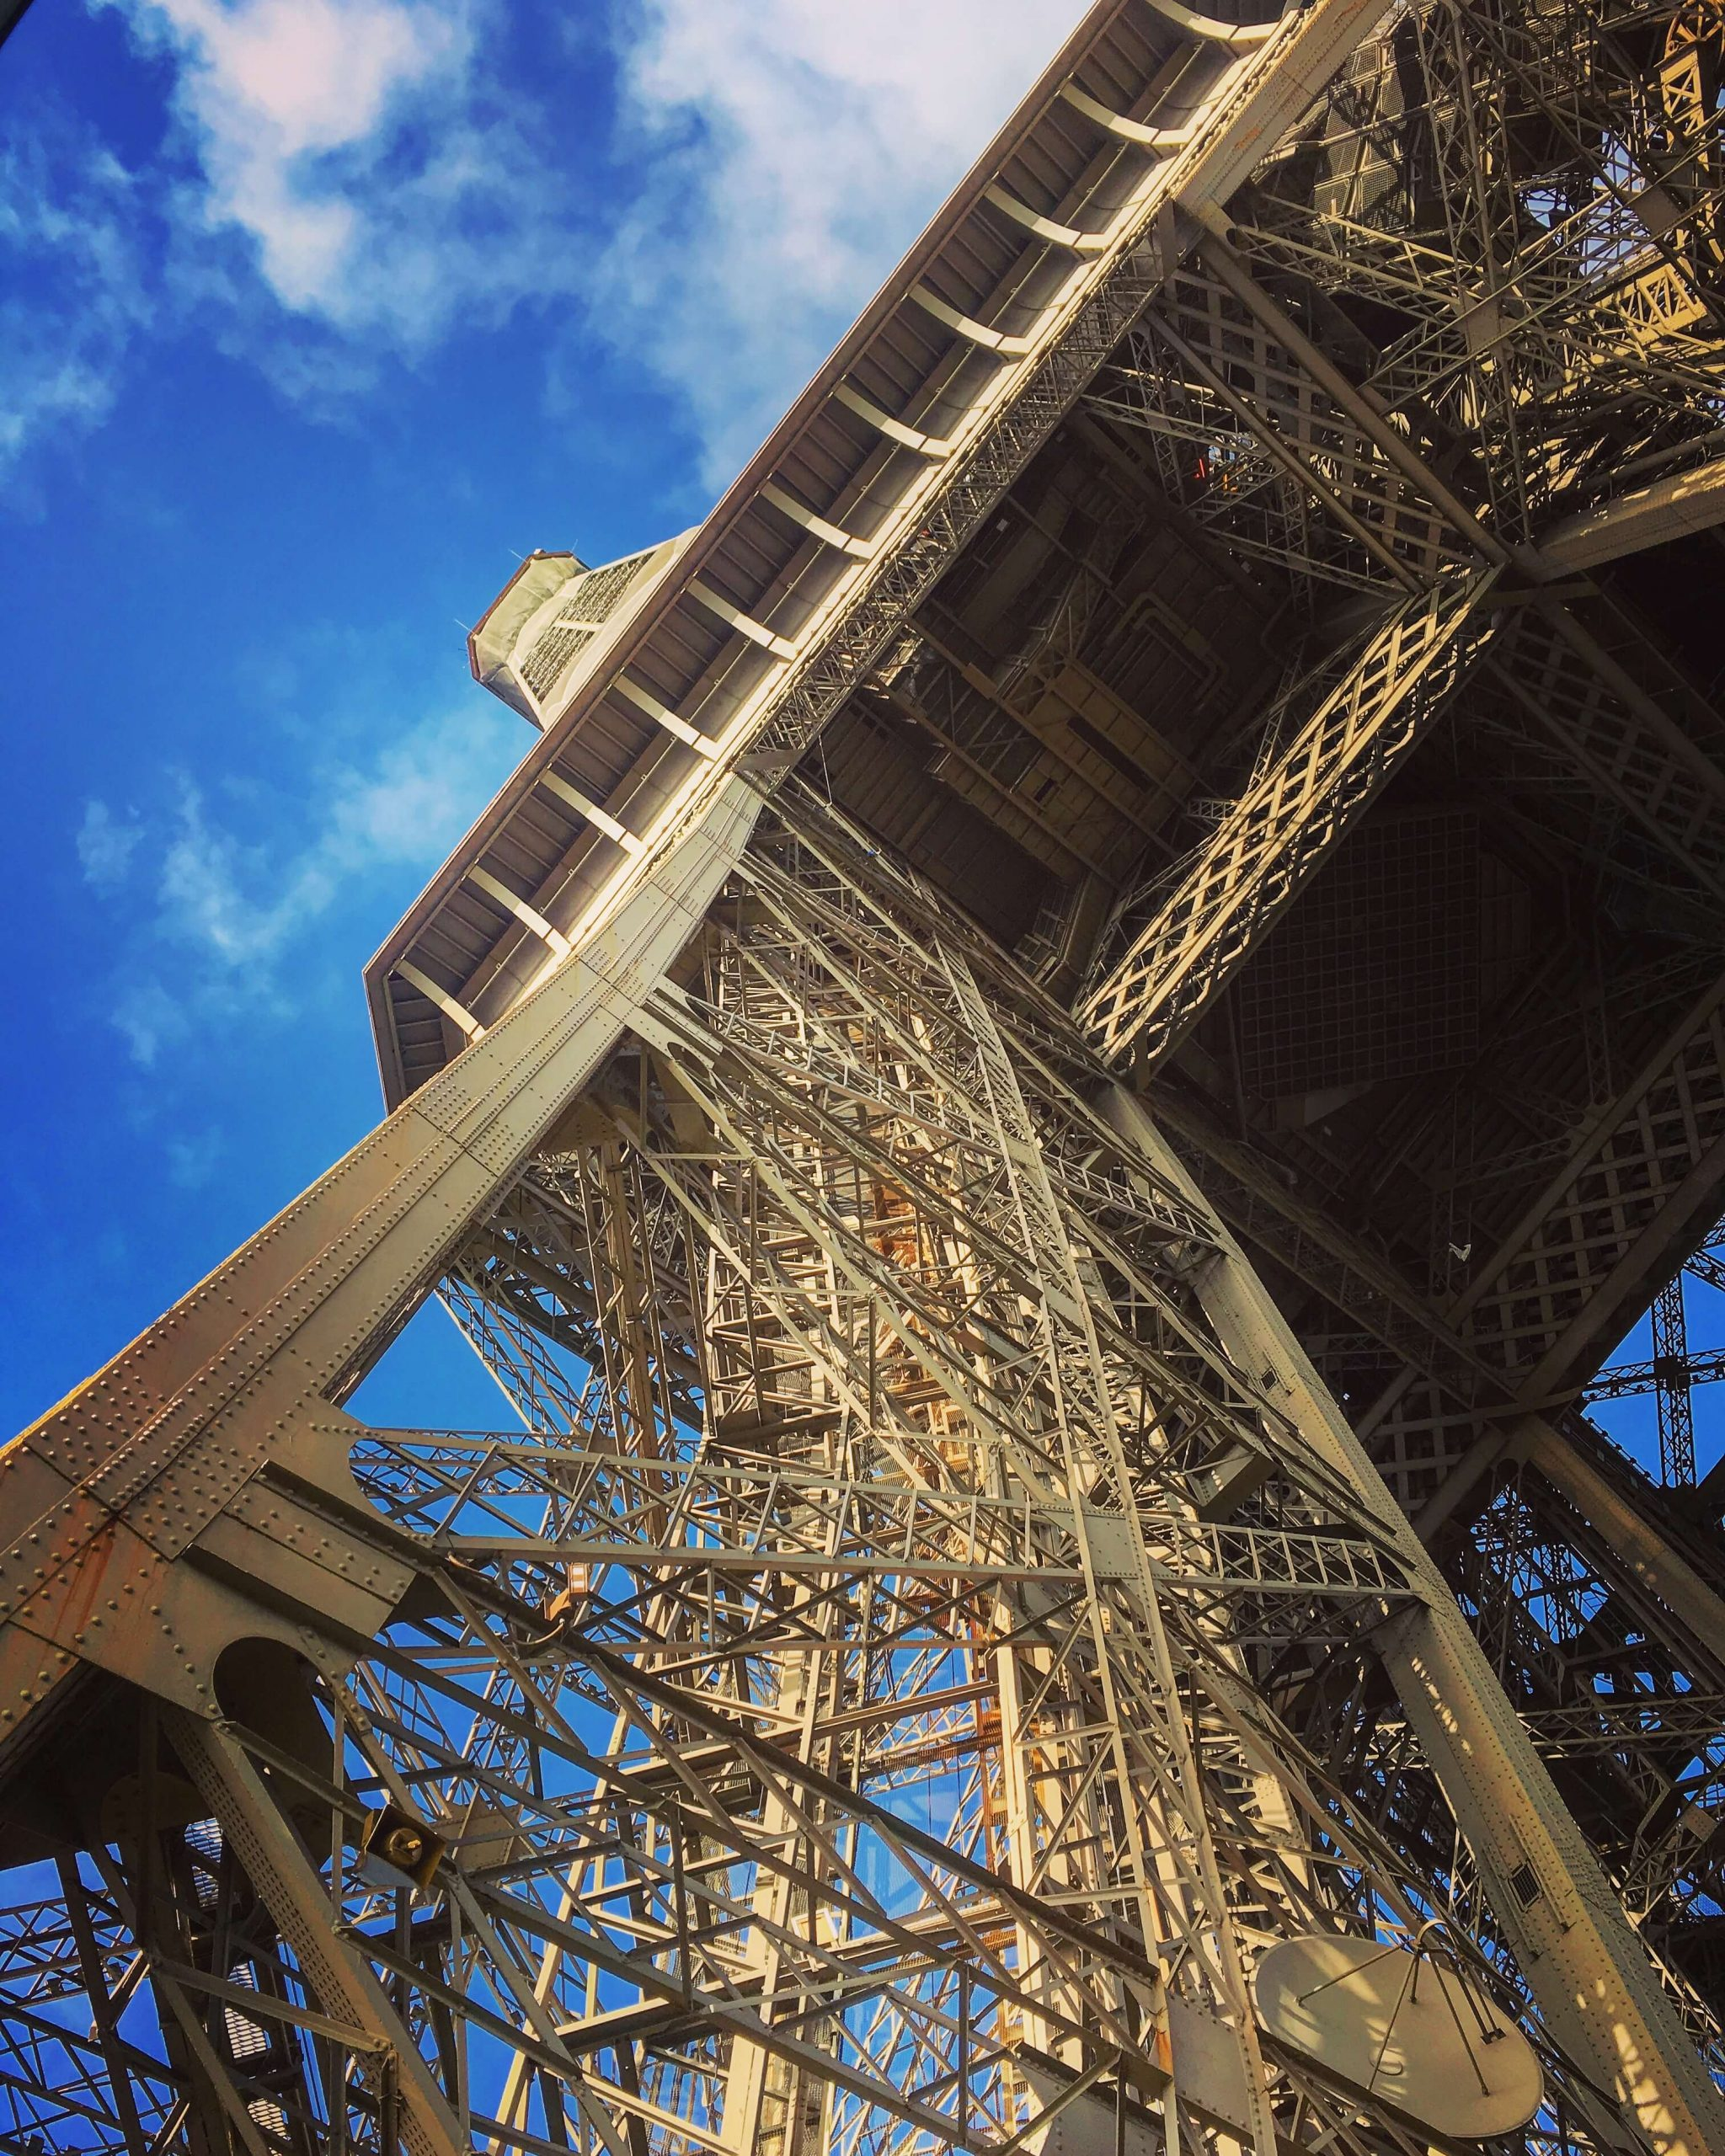 Looking up to the top of the Eiffel Tower with bright blue sky